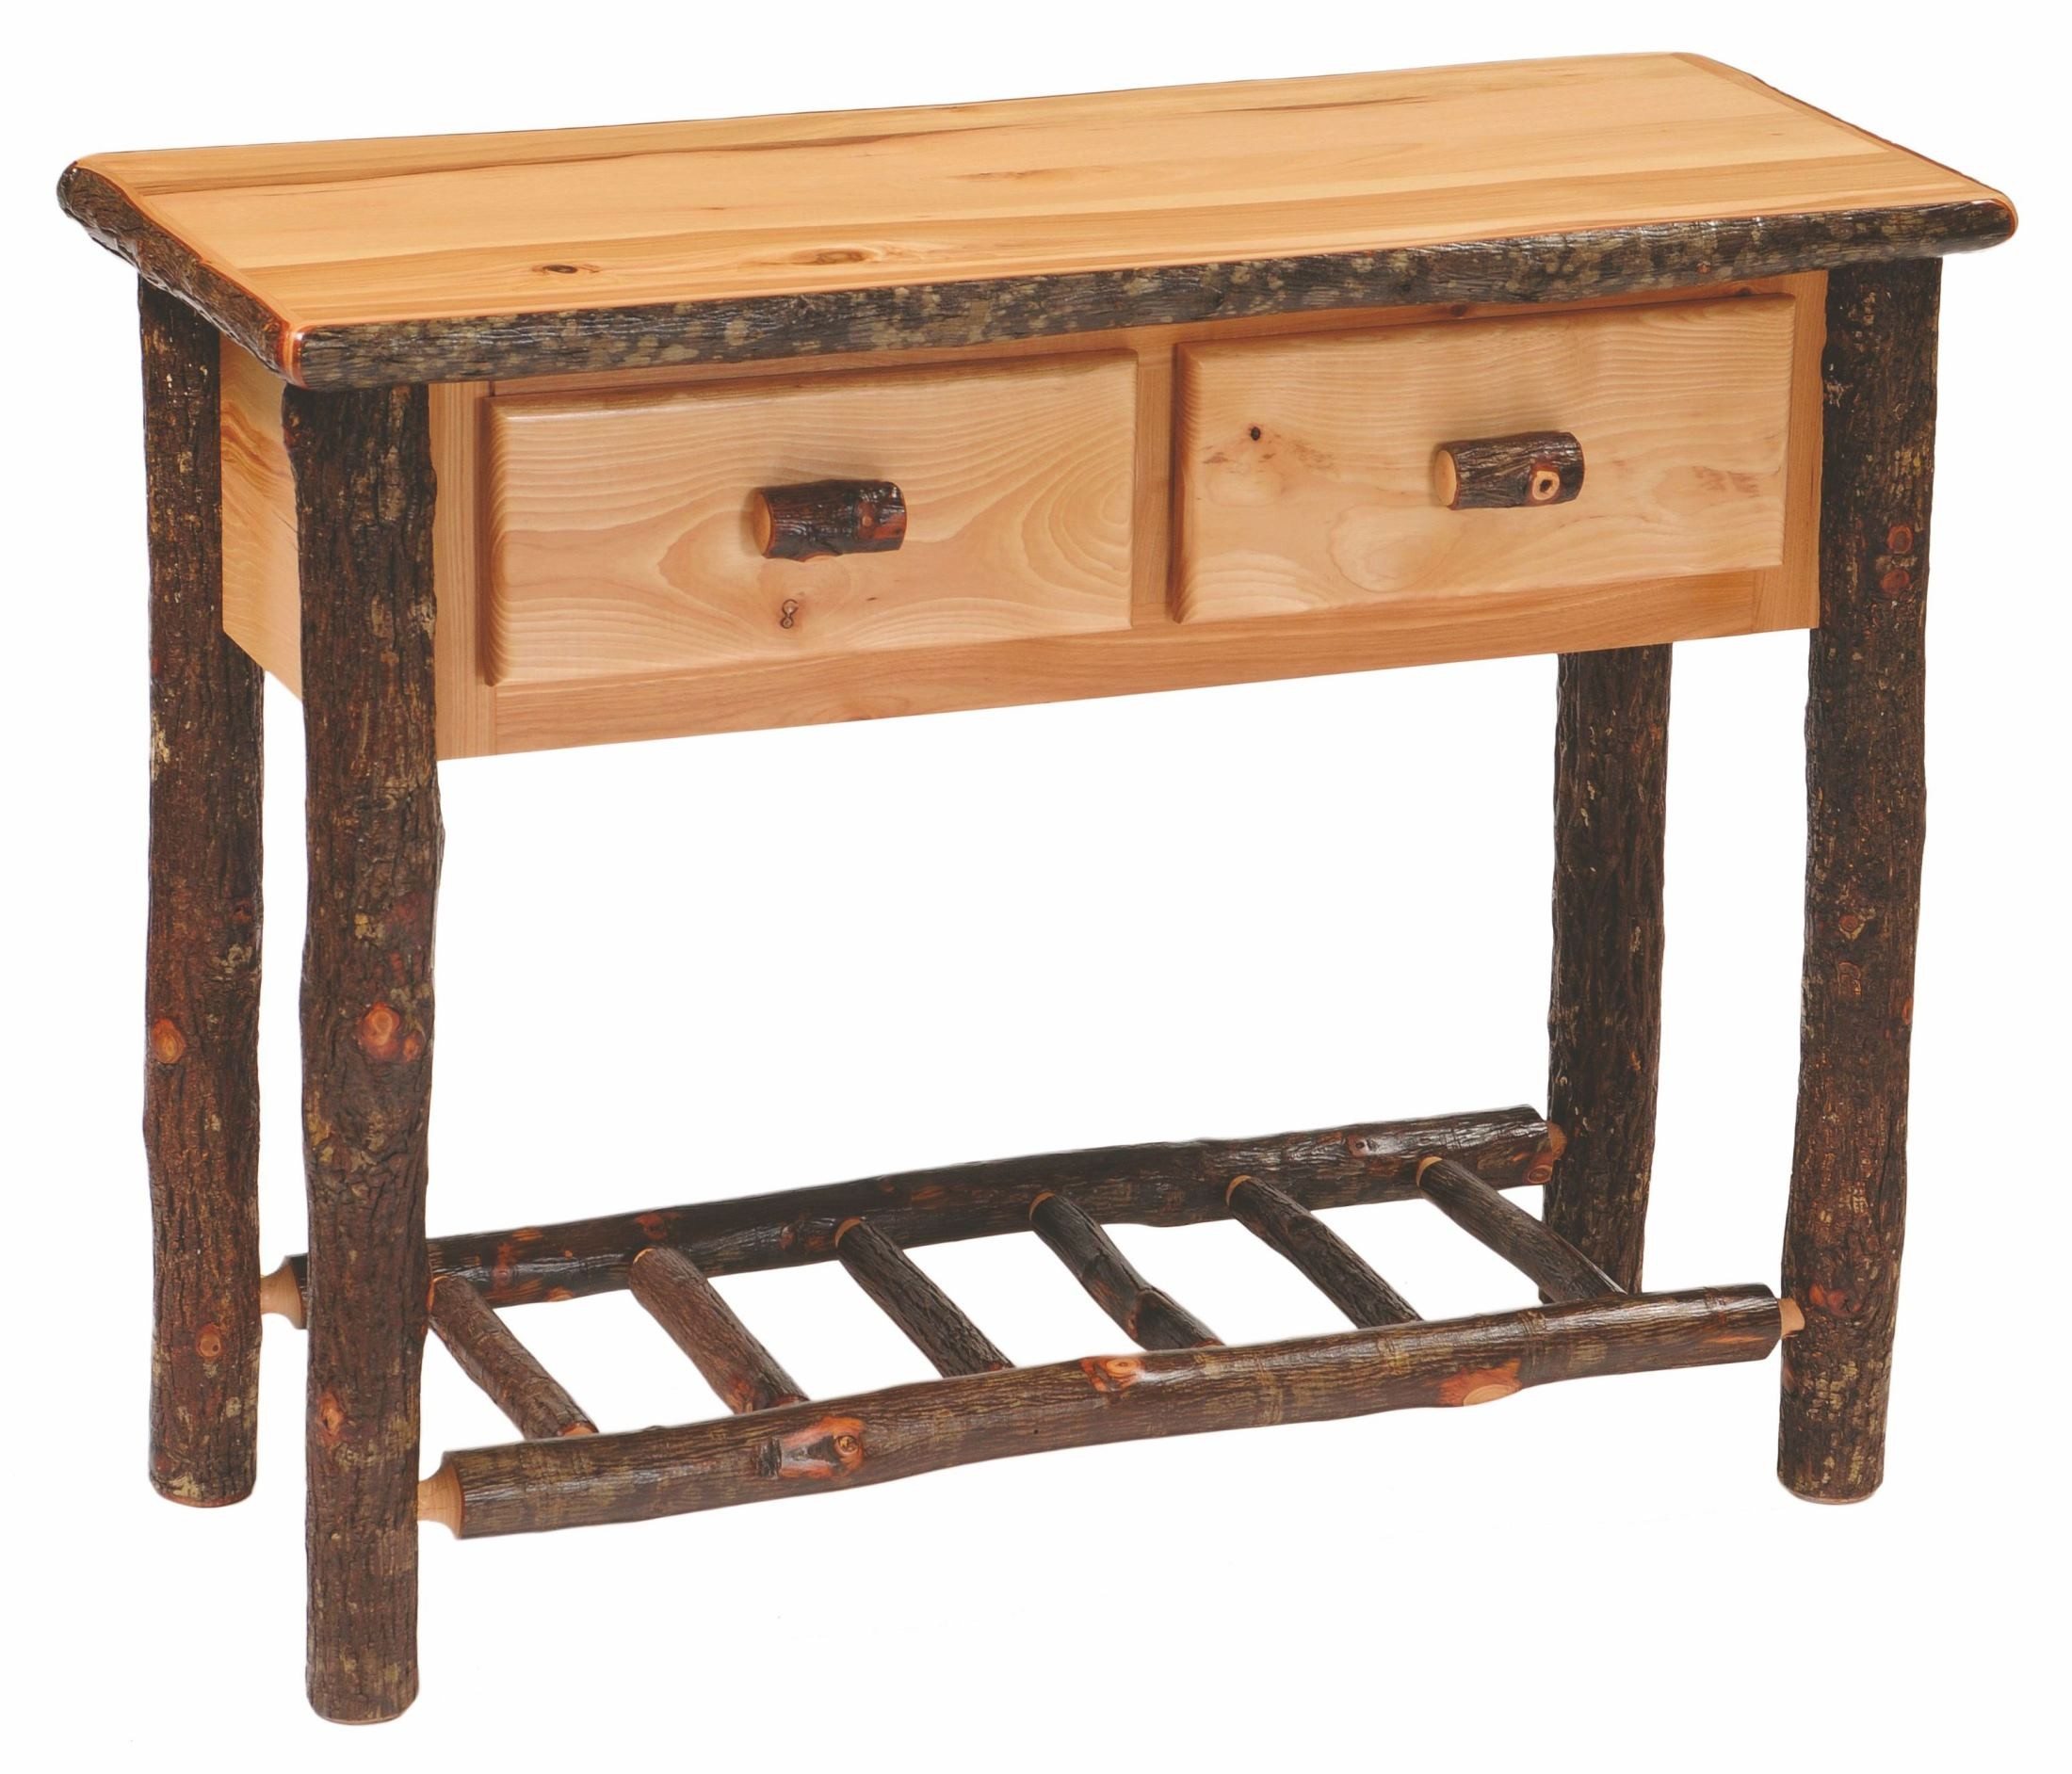 Hickory 2 drawer sofa table from fireside lodge 84134 - Contemporary console tables with drawers ...